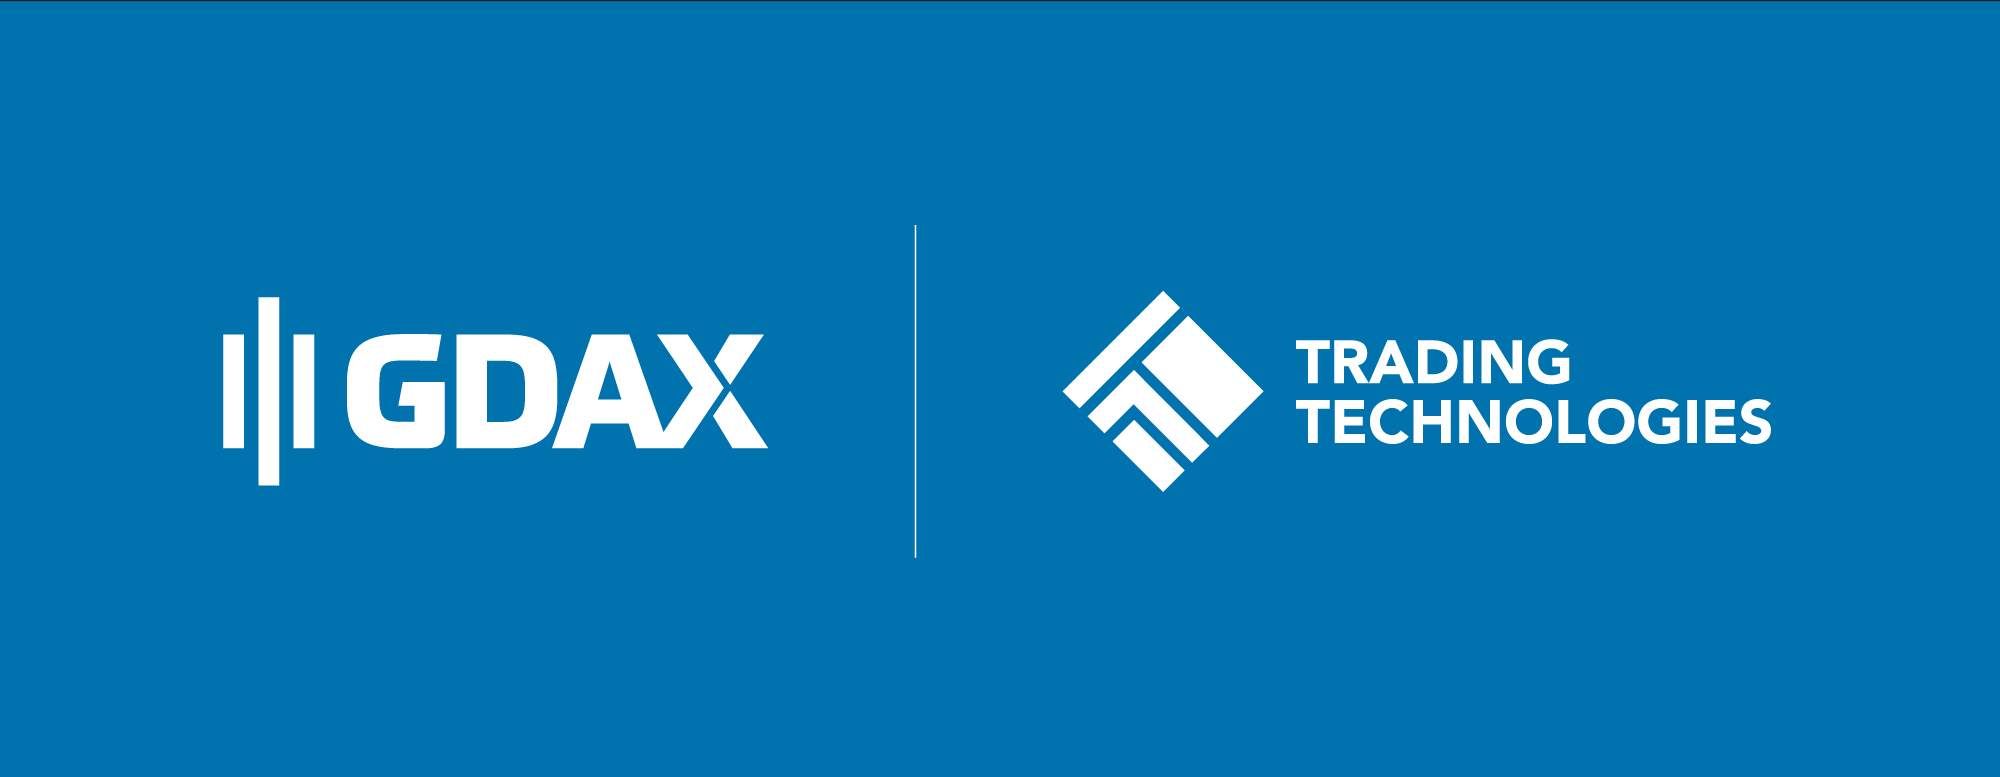 Trade Bitcoin, Bitcoin Cash, Etherum and Litecoin on Coinbase's GDAX using the TT platform